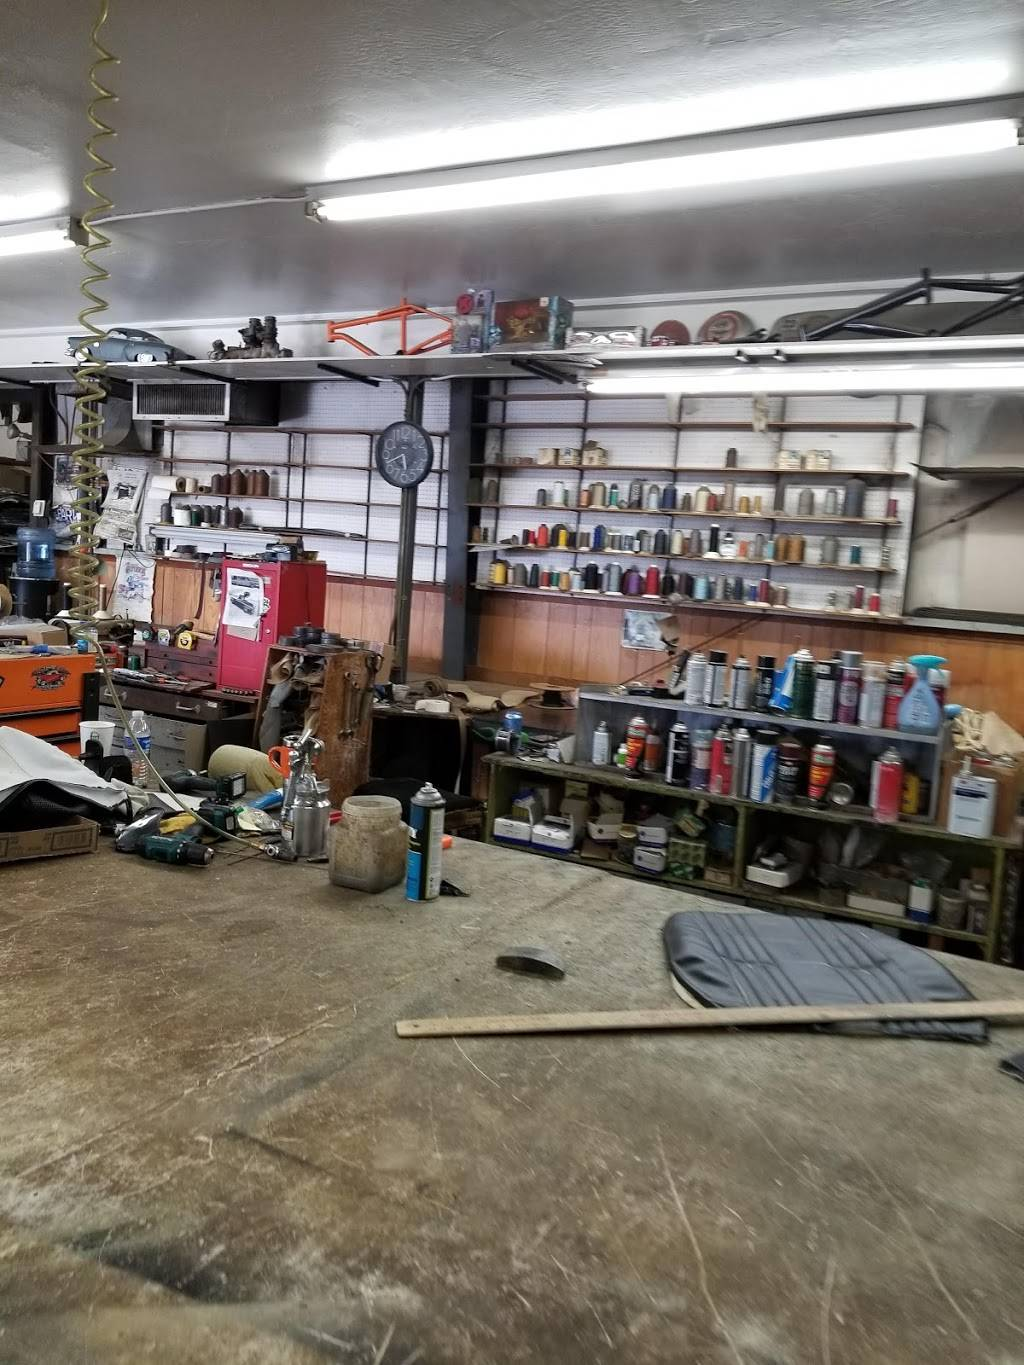 Wall & Eades Auto Upholstery - car repair  | Photo 3 of 10 | Address: 2070 E Olive Ave, Fresno, CA 93701, USA | Phone: (559) 233-7216